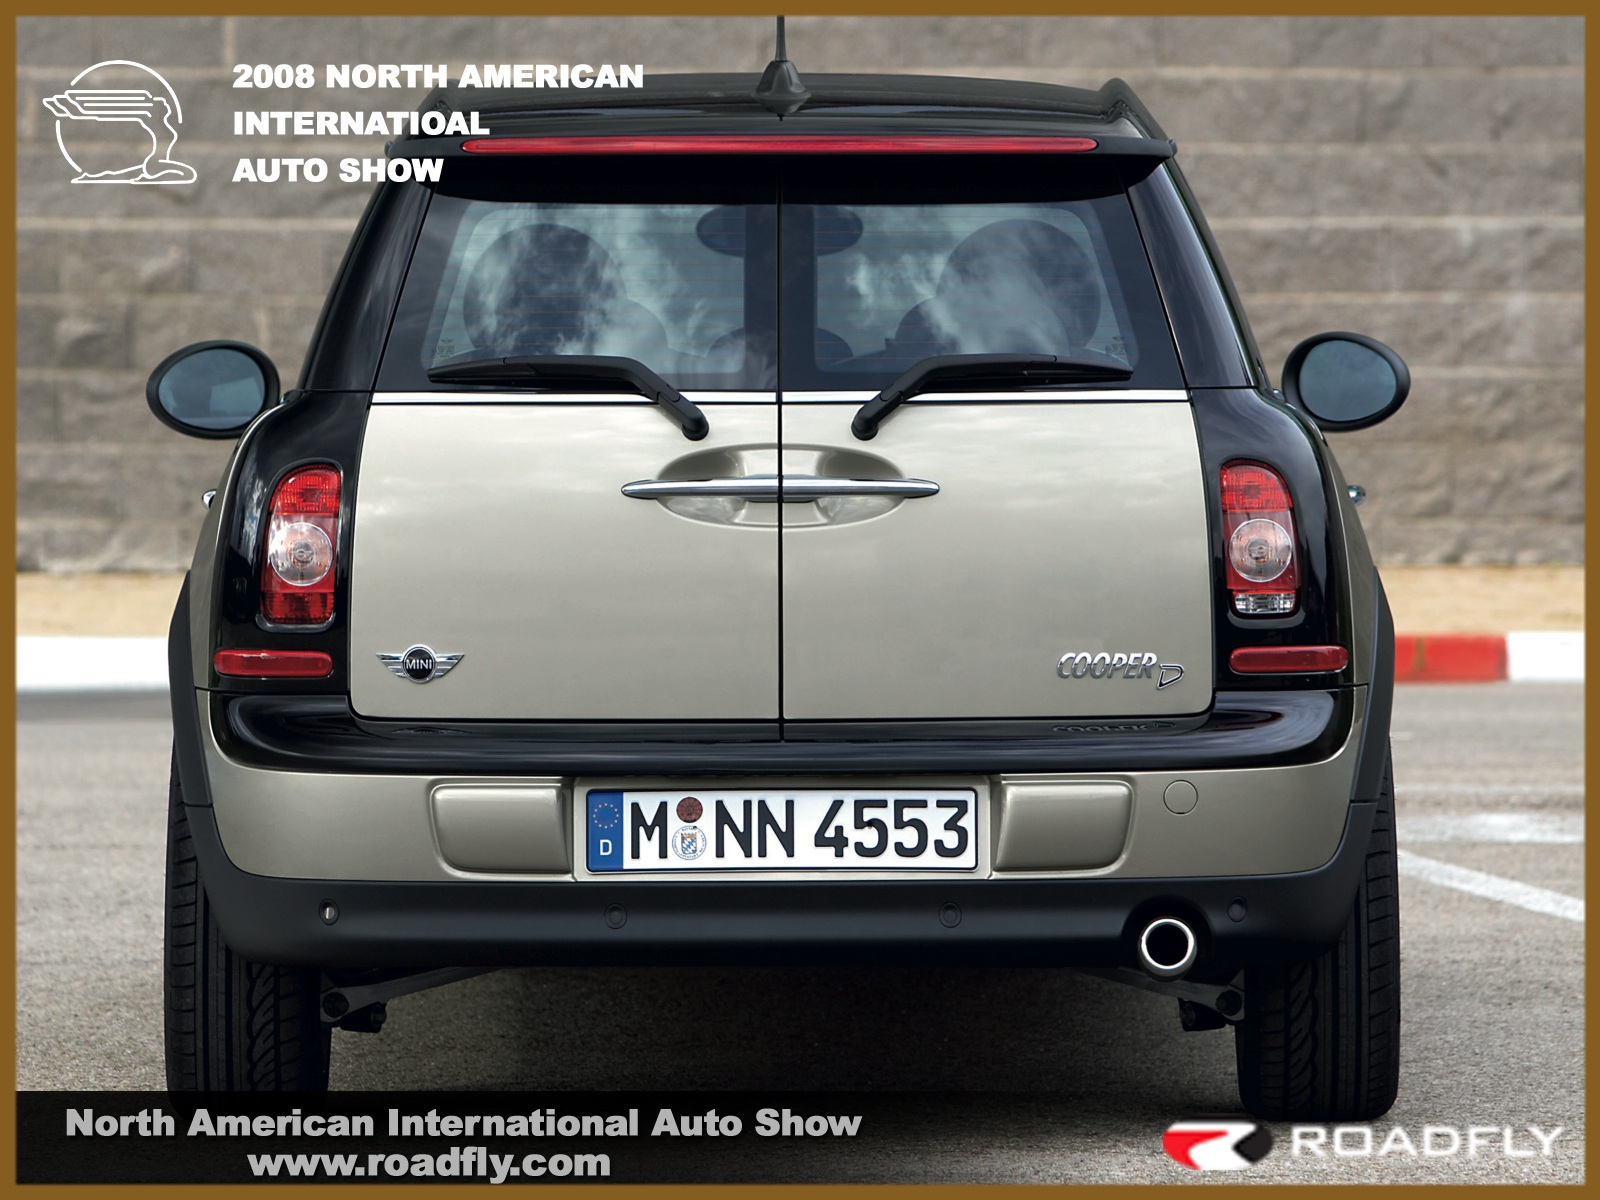 mini cooper clubman related images,151 to 200 - Zuoda Images